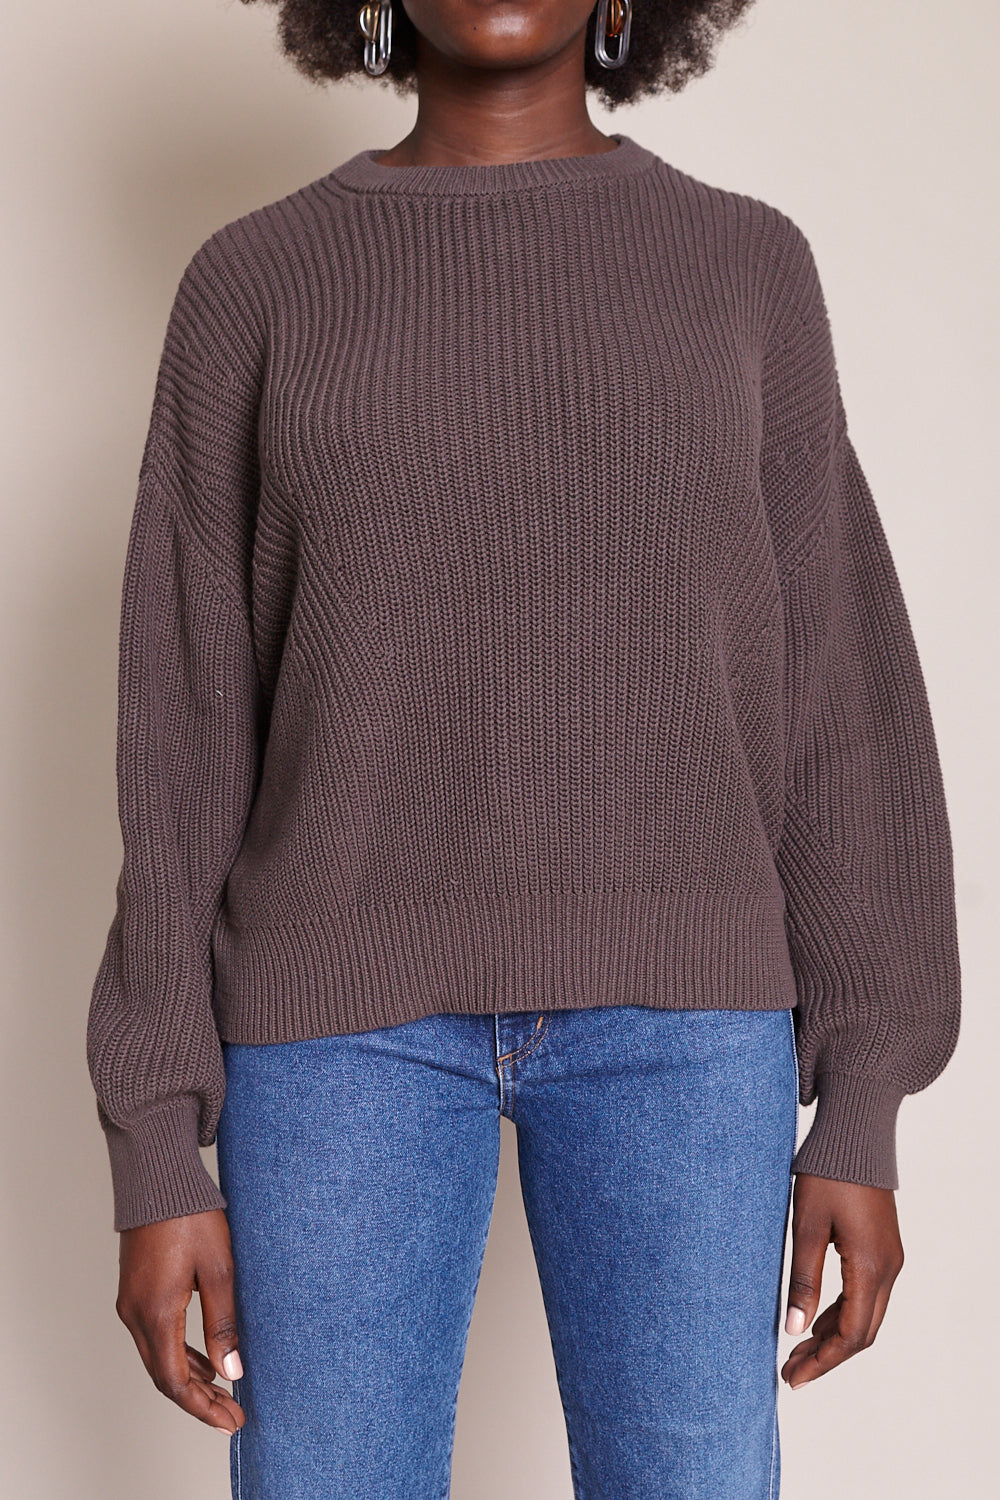 Poet Sleeves Cotton Sweater in Gray